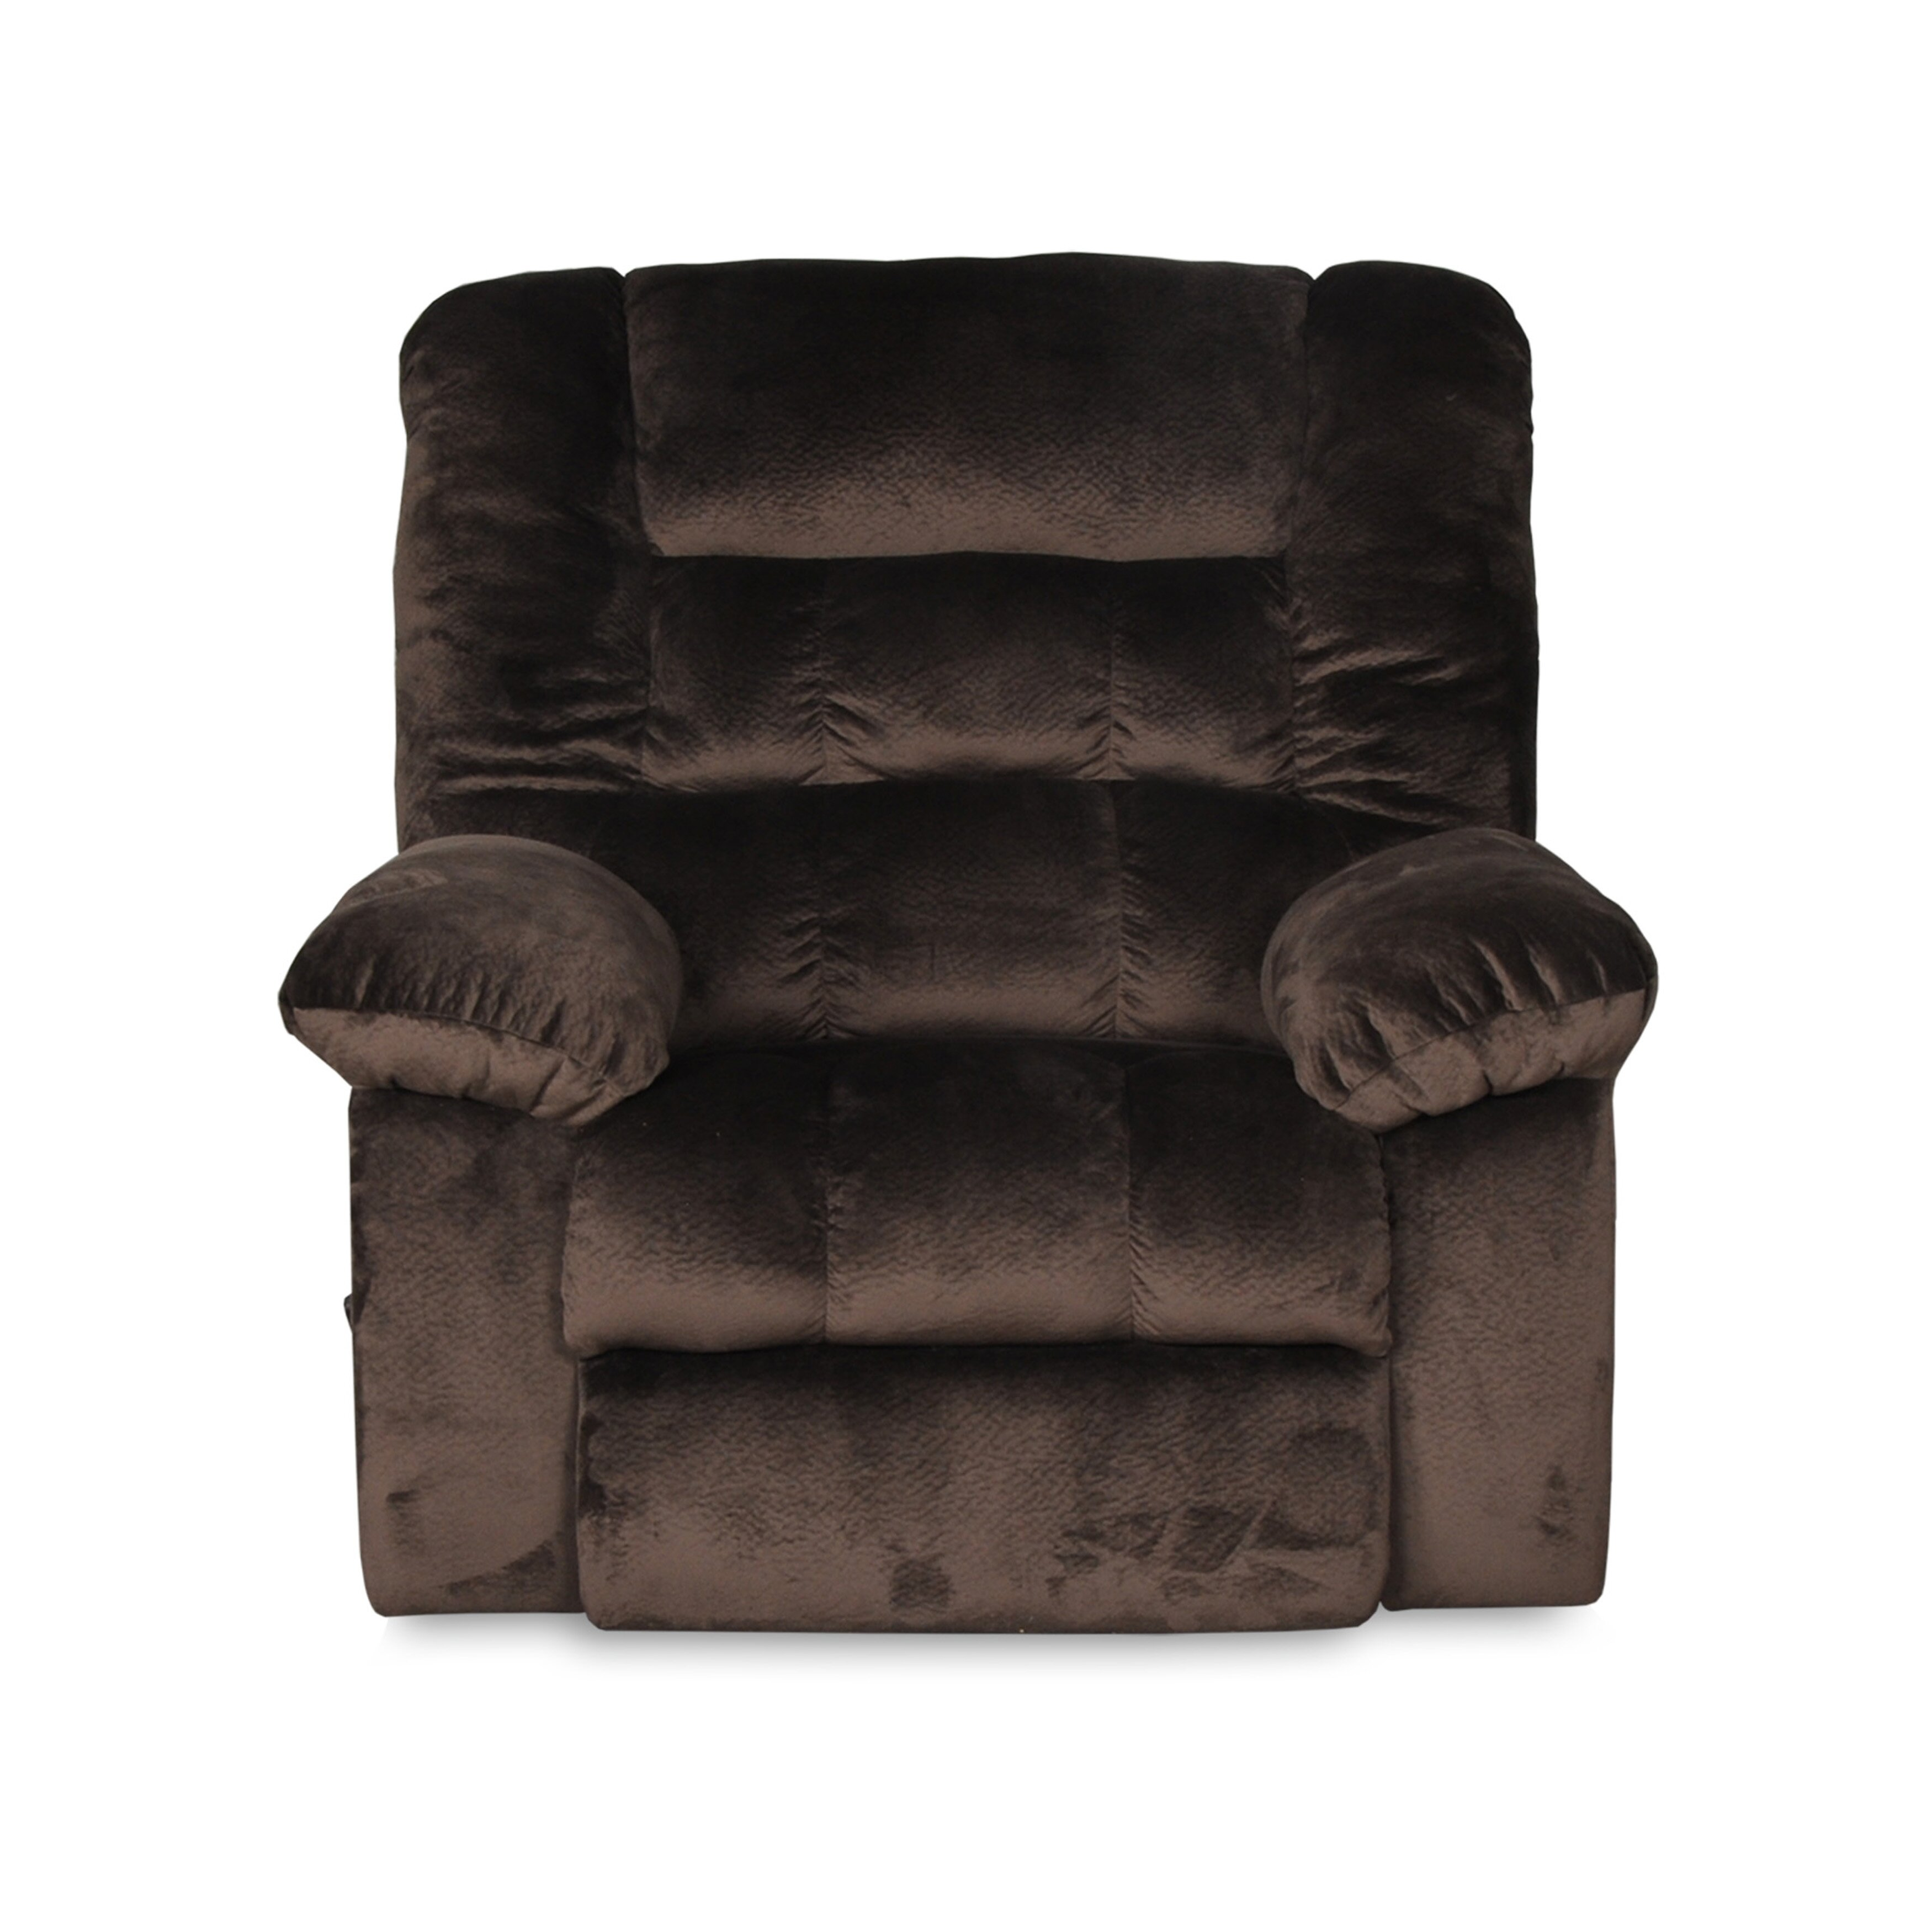 Oversize Recliners Recliners For Heavy Weight Of Heavy